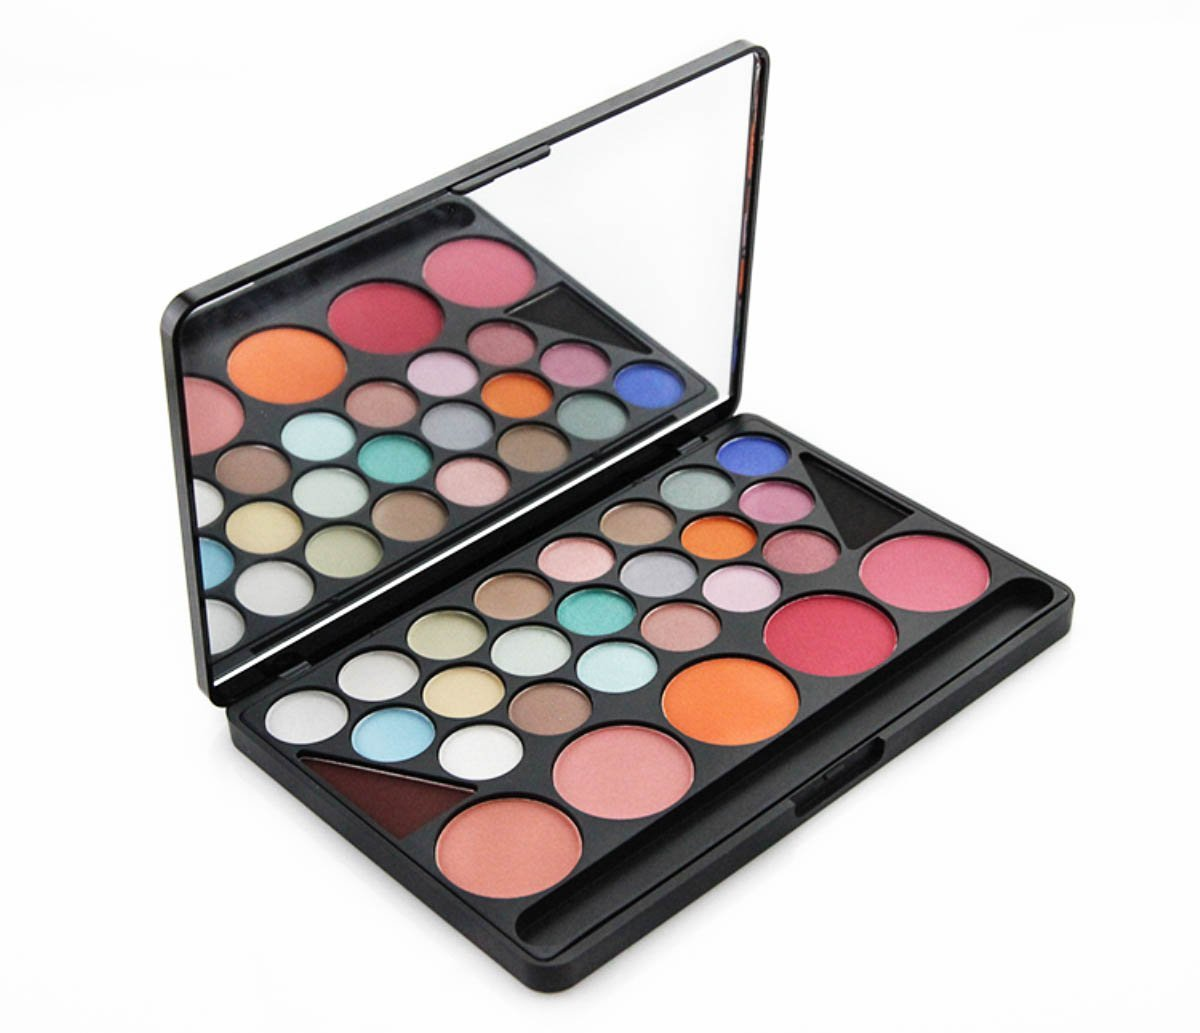 Frola cosmetics - Professional 28 Color Makeup Pad Palette Kit Set Inlucde Eyeshadow, Blush and Powder (#02)